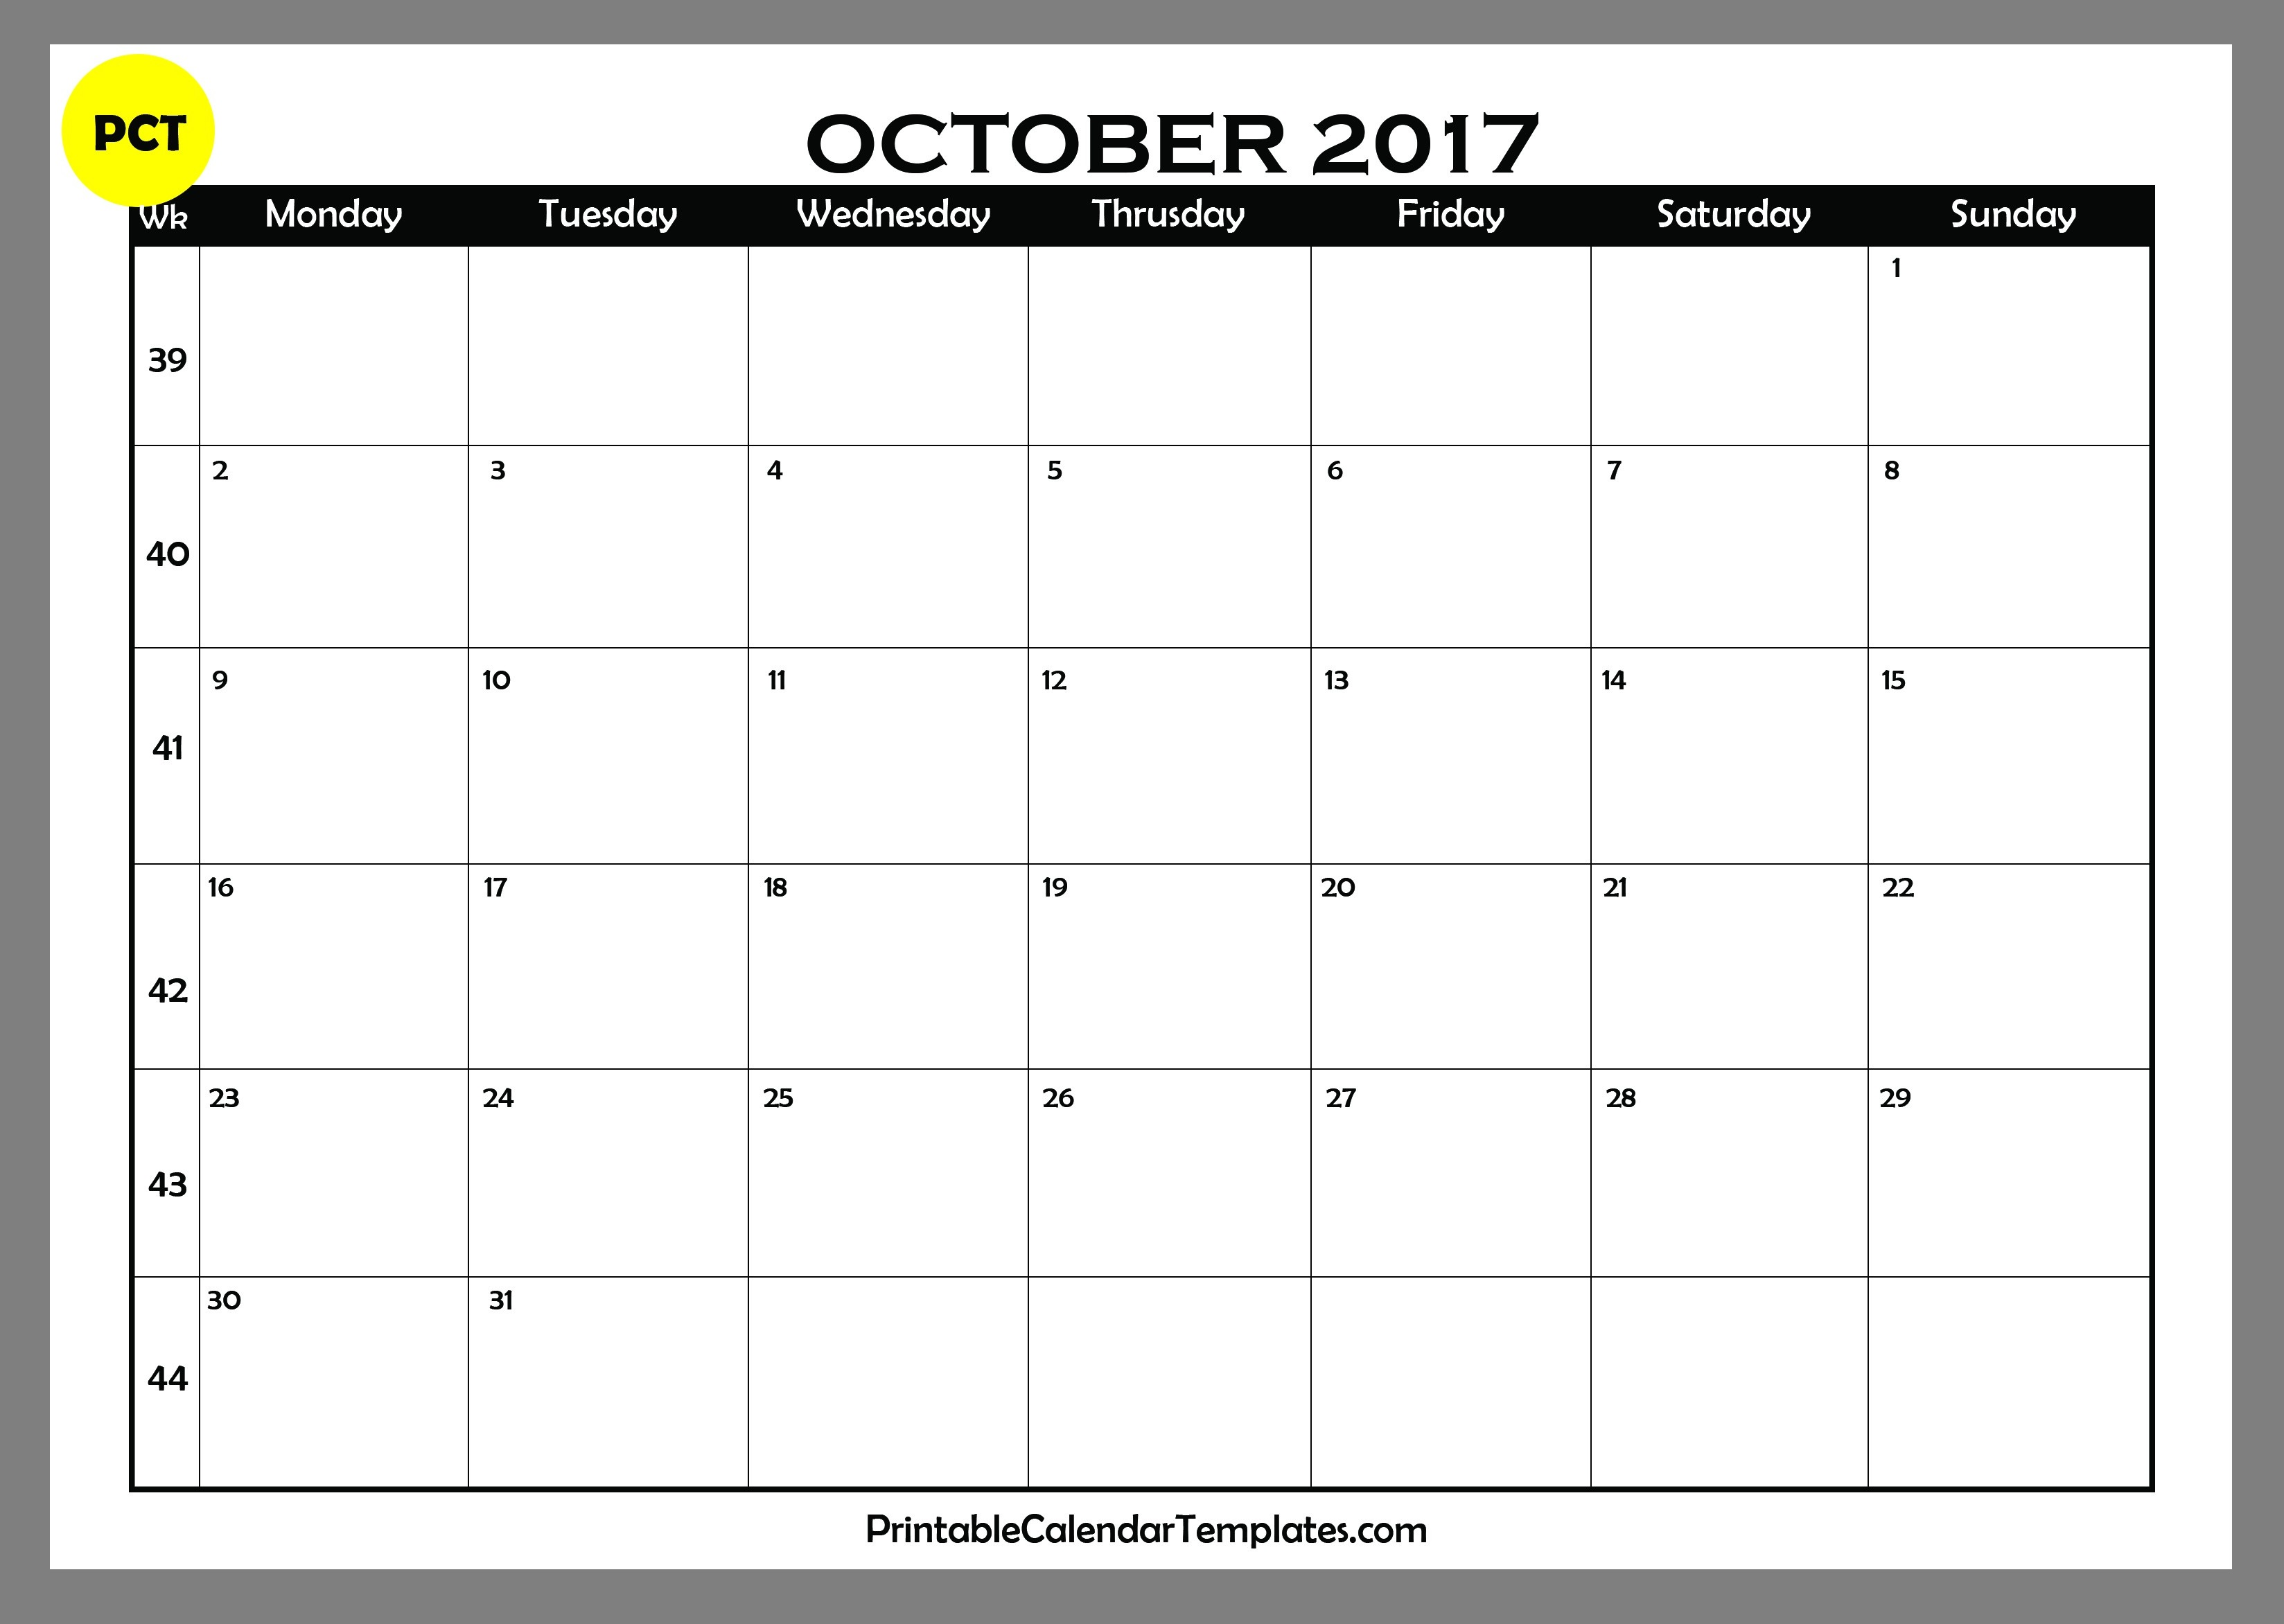 October 2017 calendar printable | Printable Calendar Templates